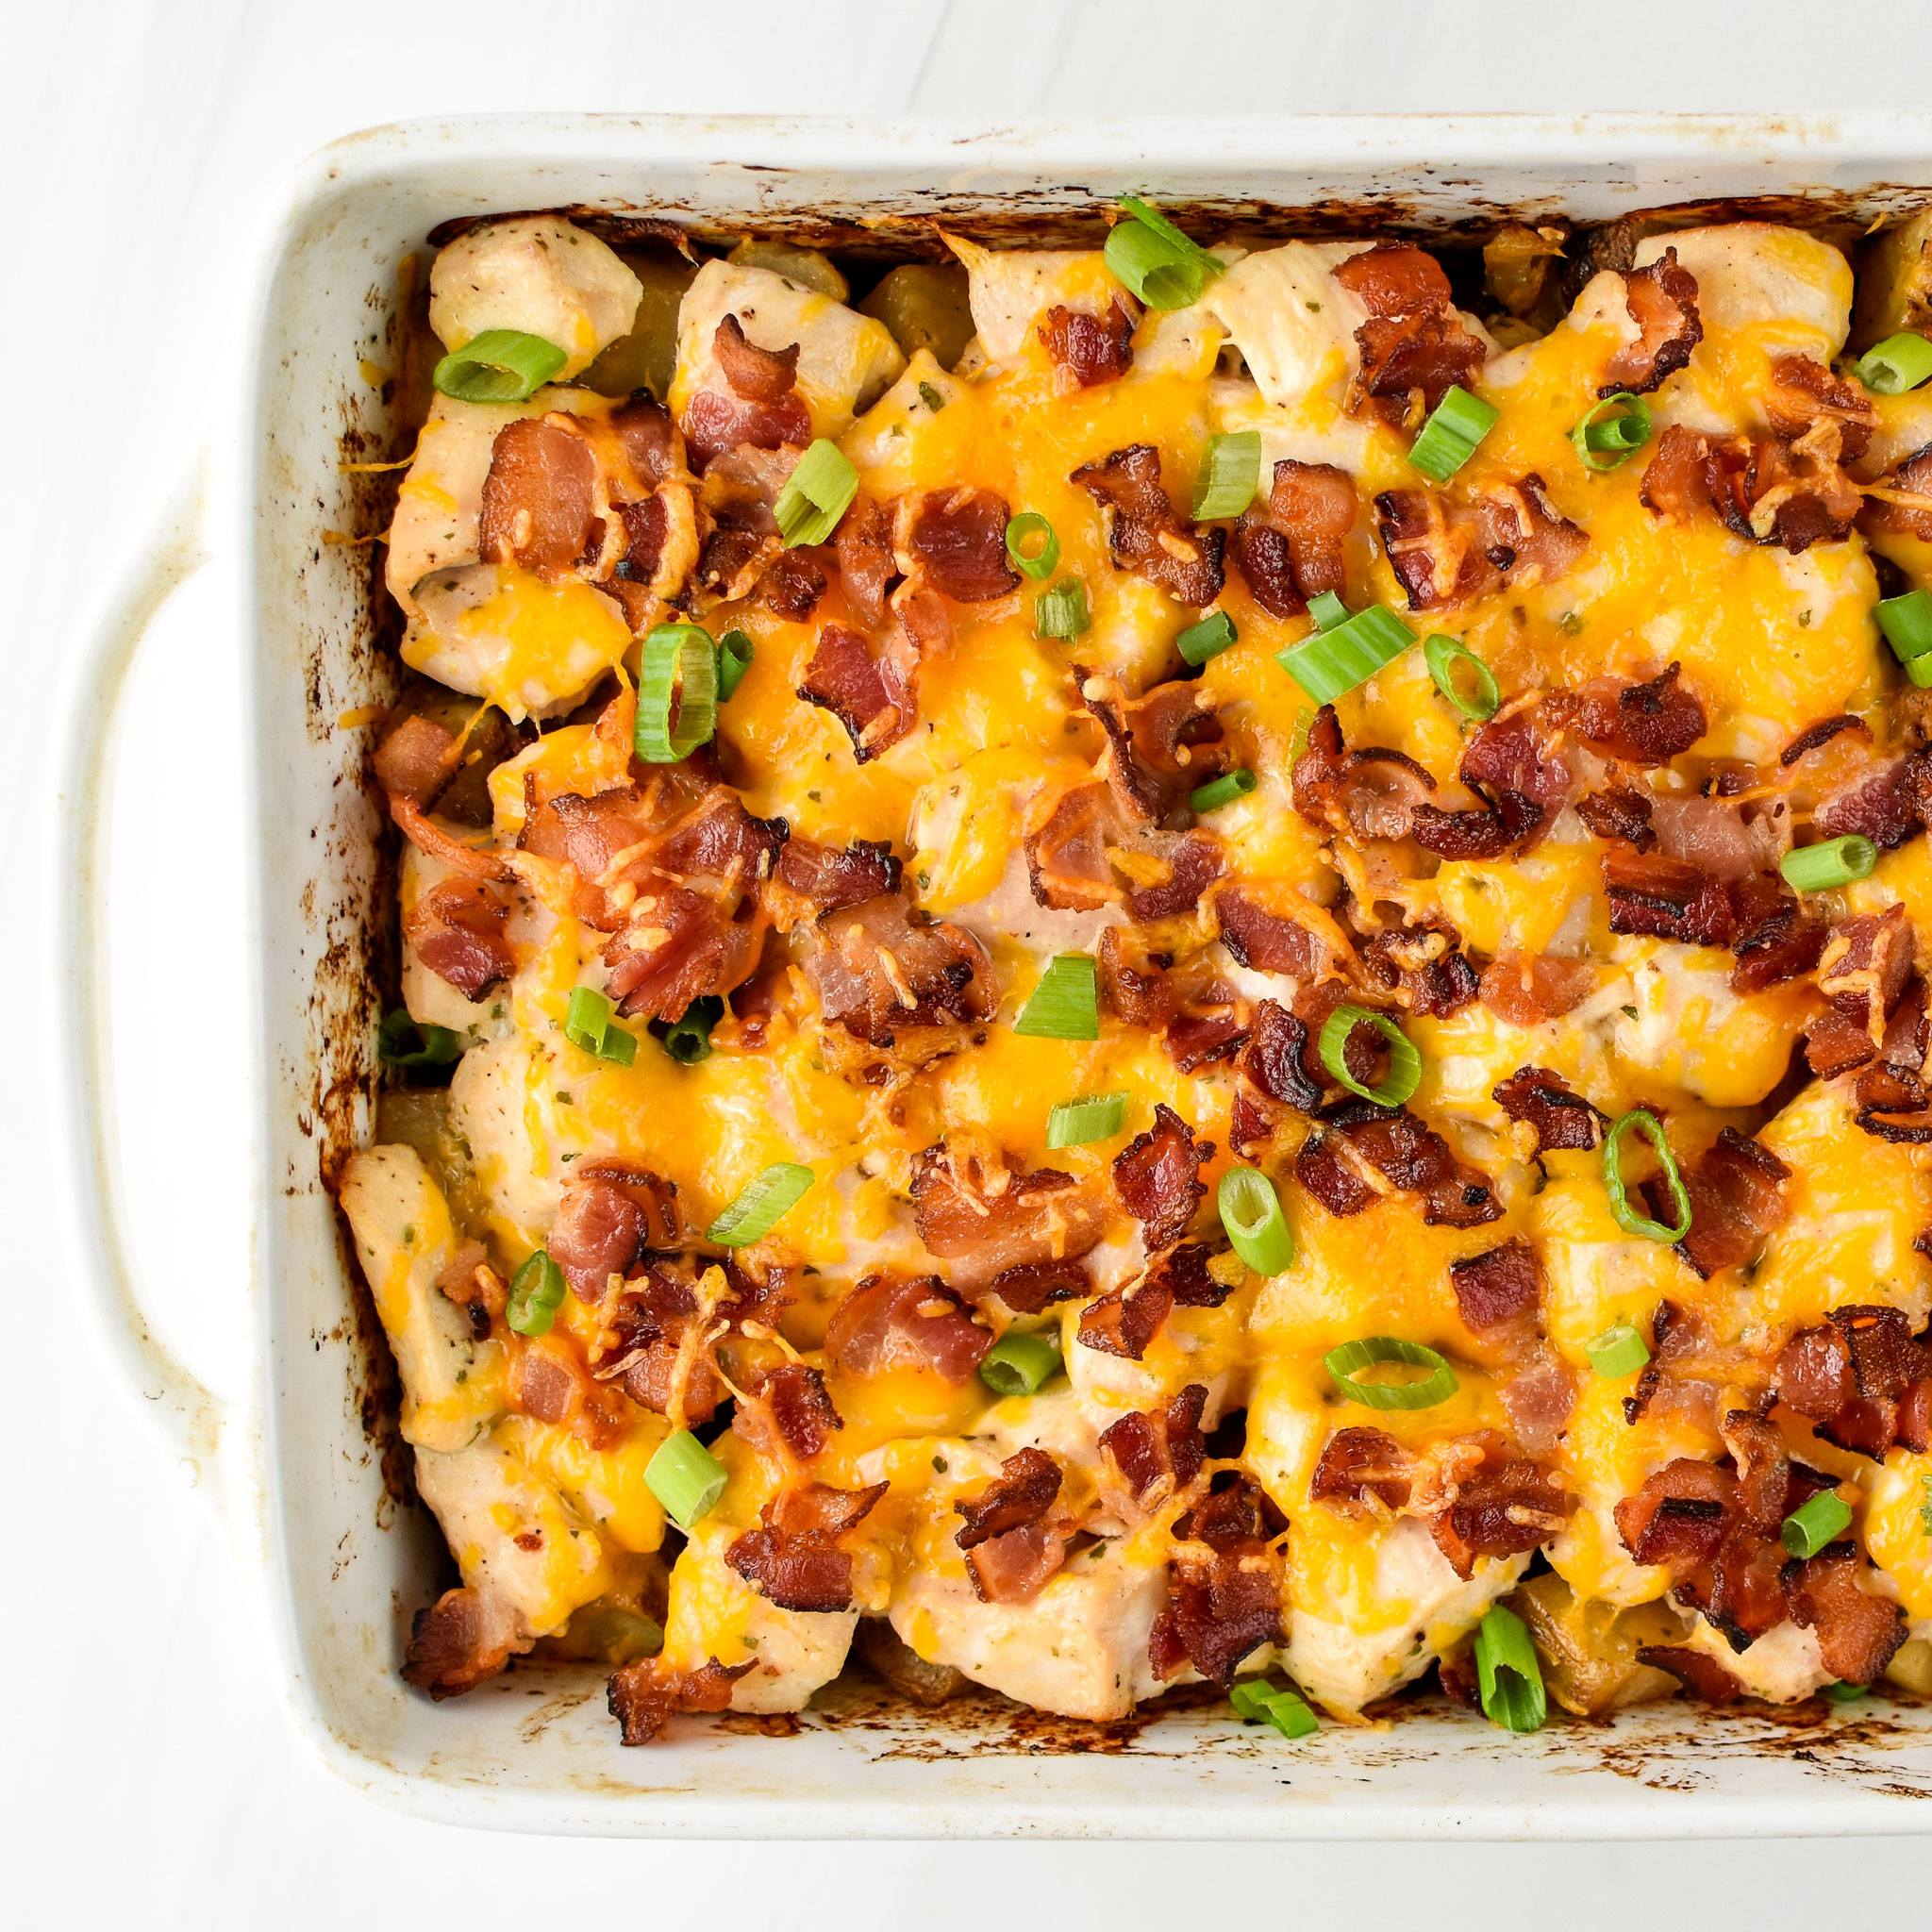 Chicken Bacon Ranch Potato Bake fresh from the oven pictured from above